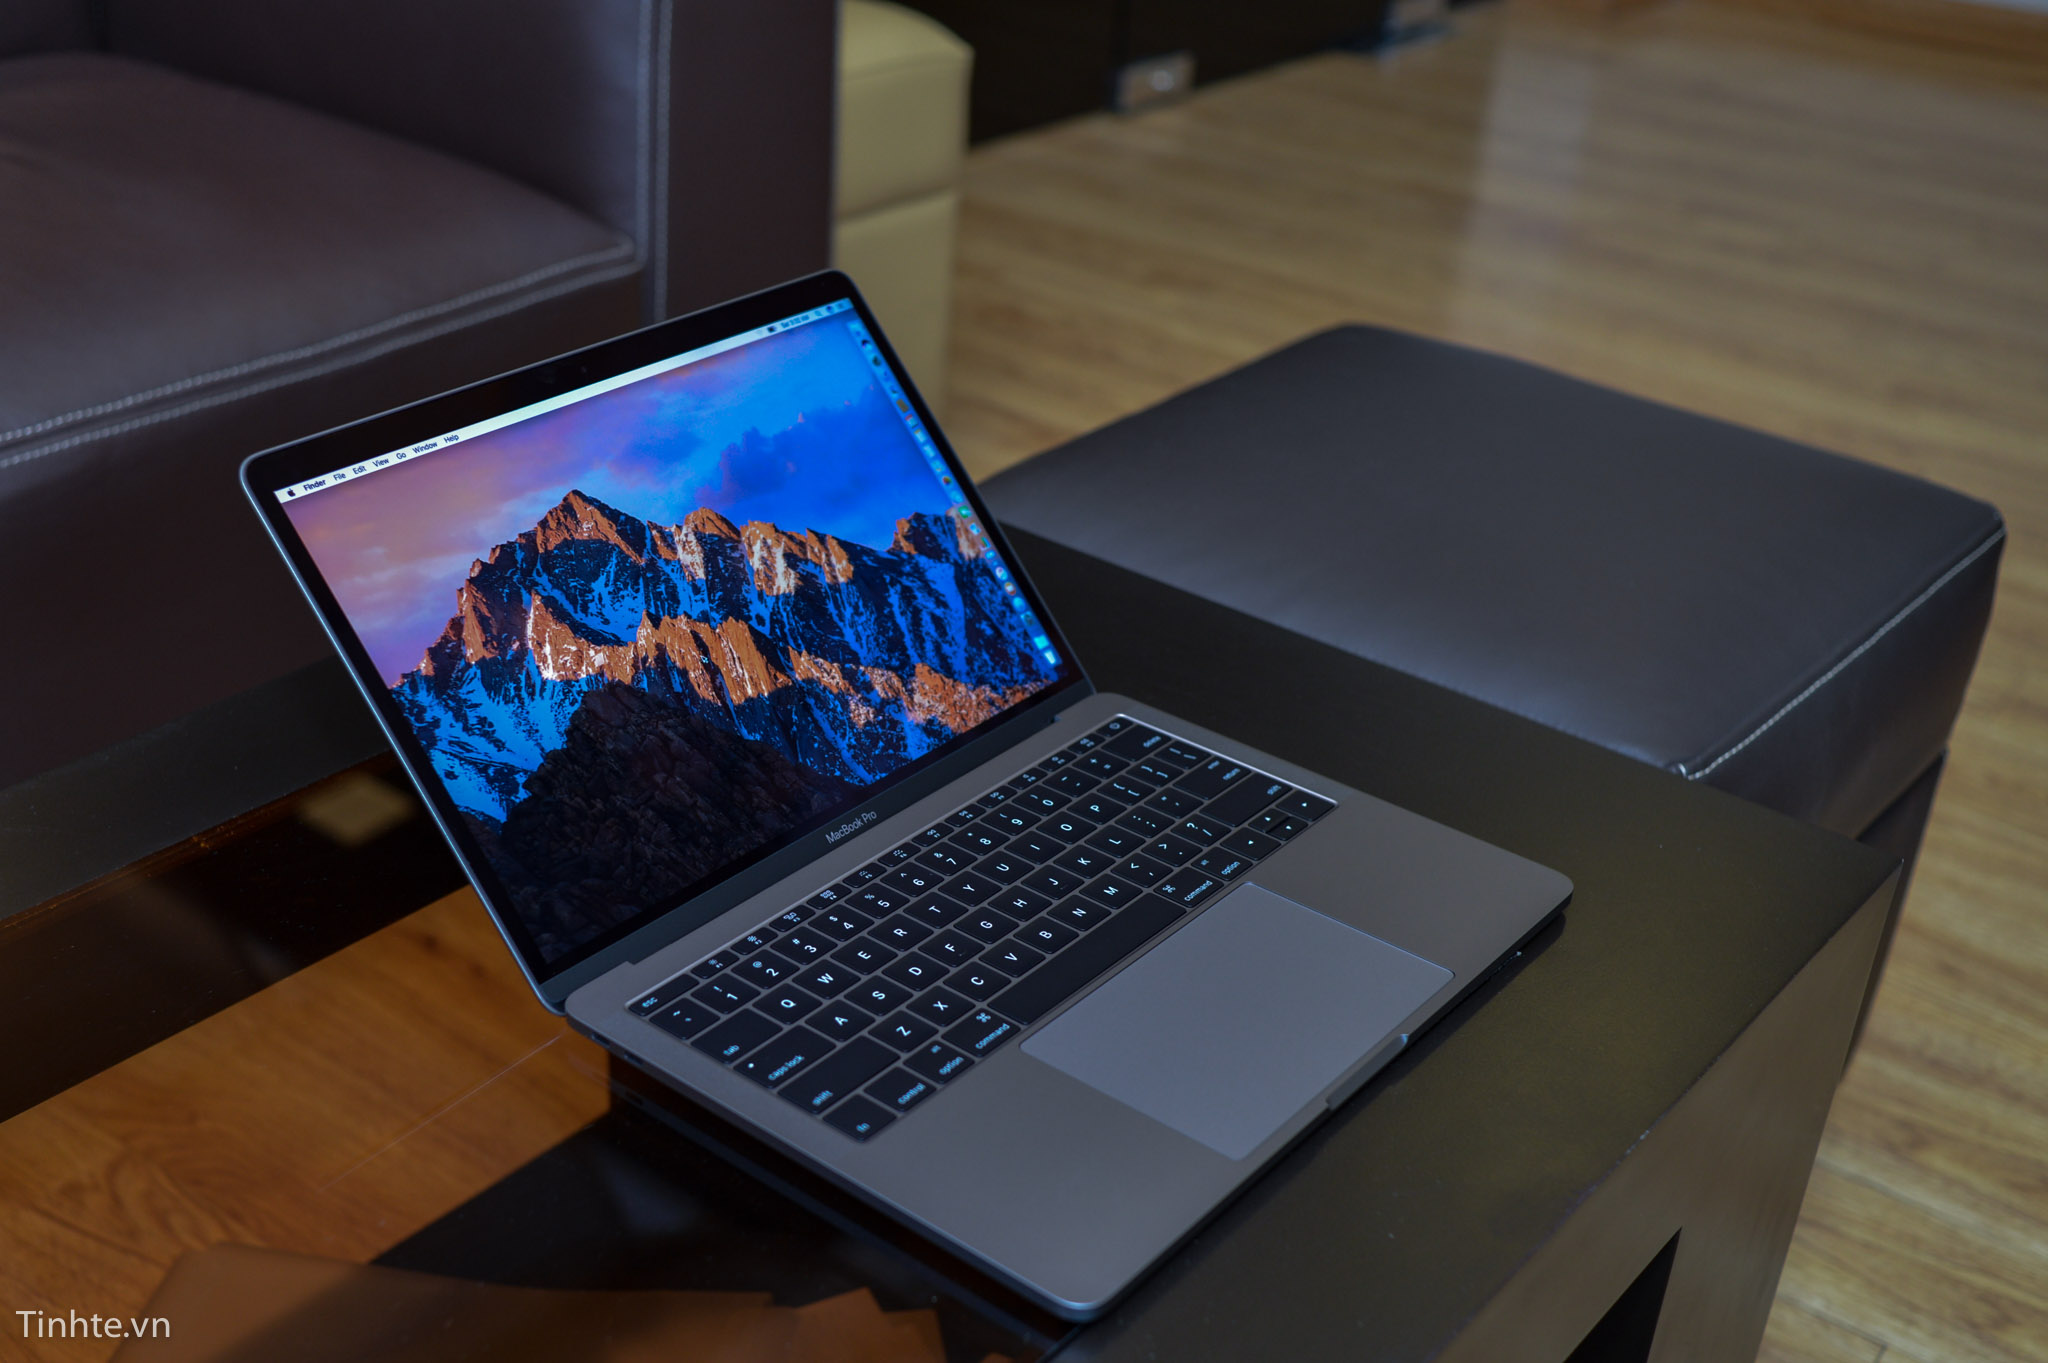 Macbook_Pro_13_late_2016-12.jpg